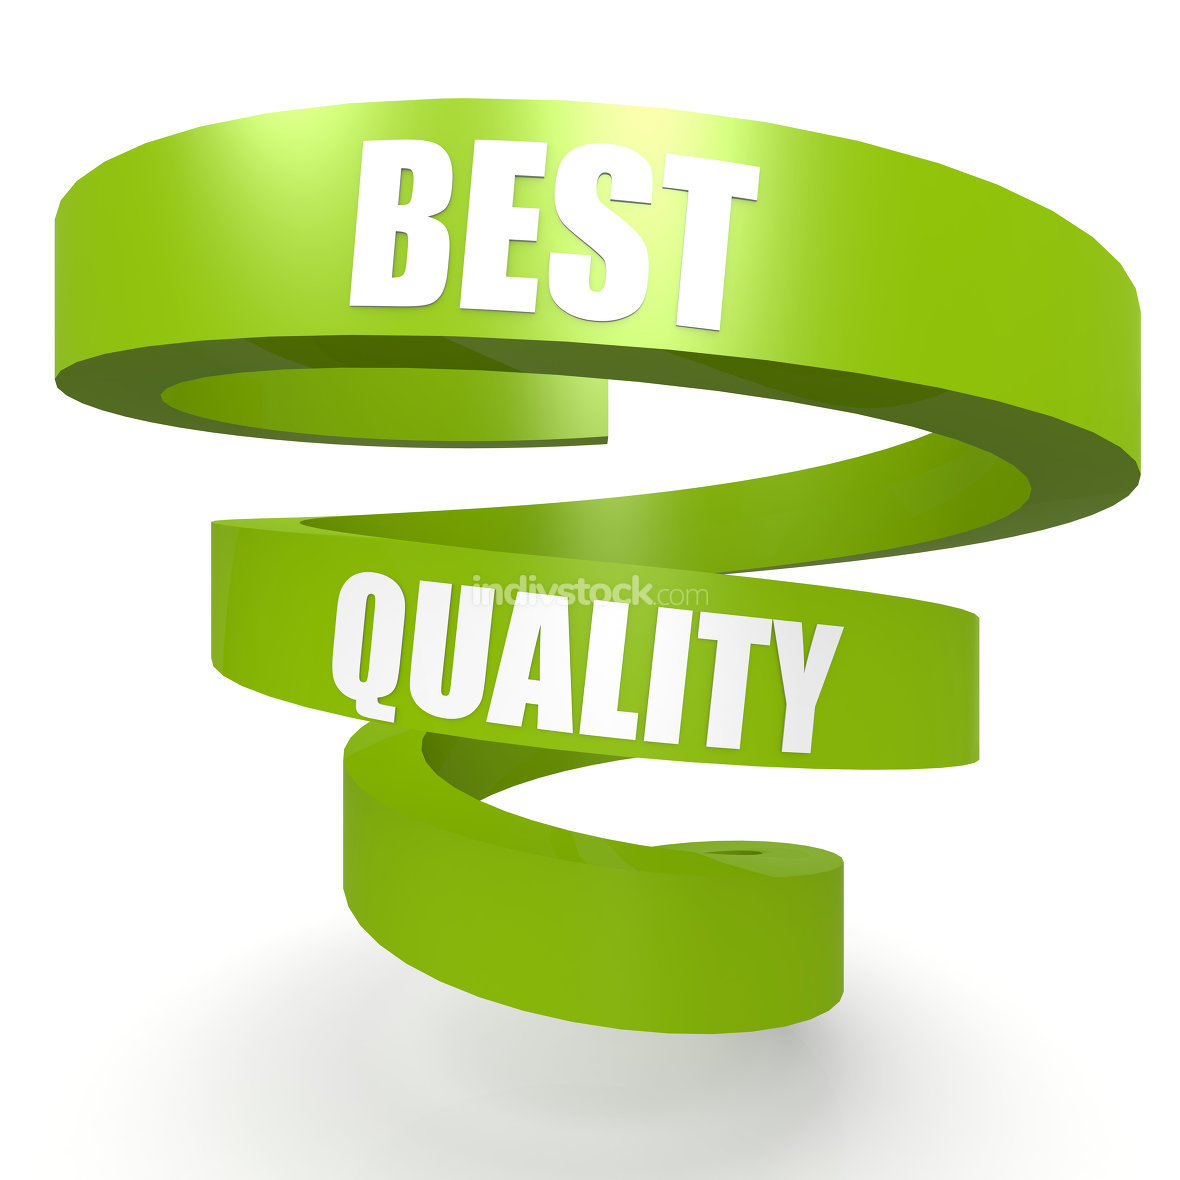 Best quality green helix banner